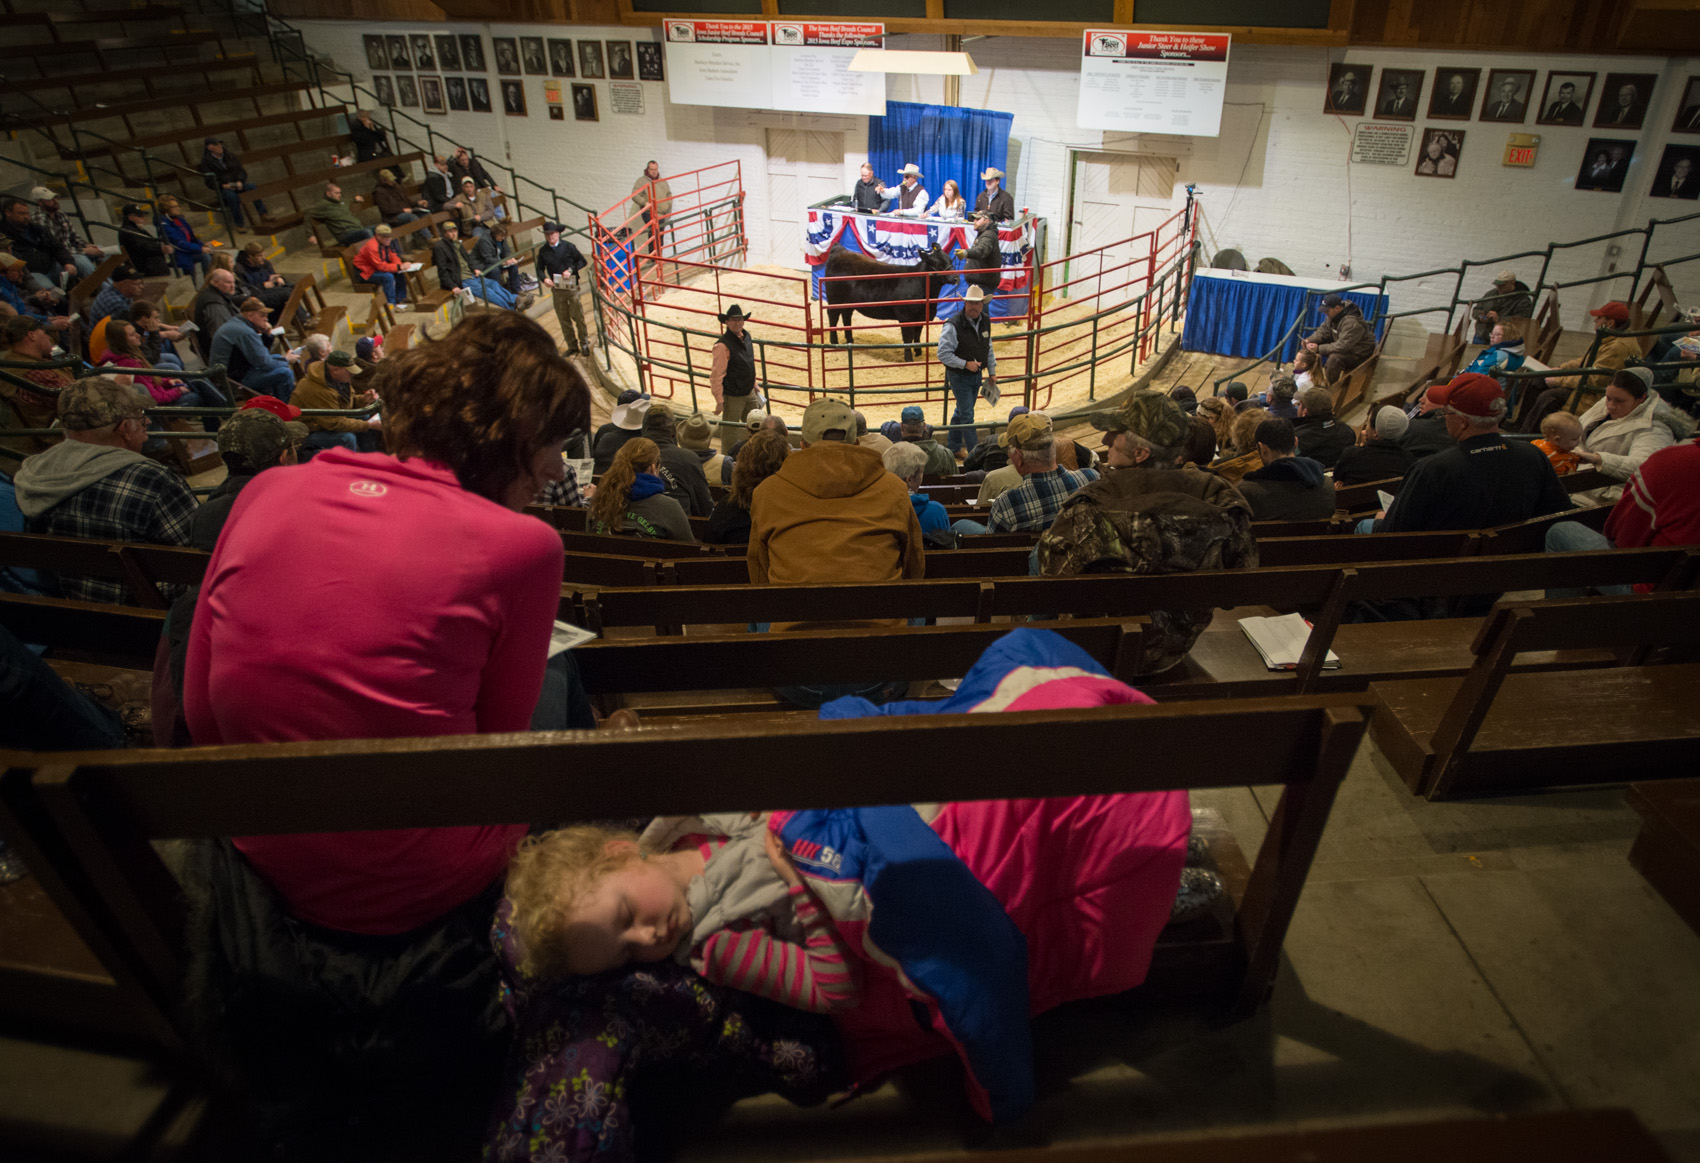 (Photo: Joseph L. Murphy) A girl takes a nap while an auctioneer calls out bids during the Iowa Beef Expo at the Iowa State Fairgrounds in Des Moines yesterday. The Iowa Beef Expo is running through Sunday of this week. (Photo: Joseph L. Murphy)